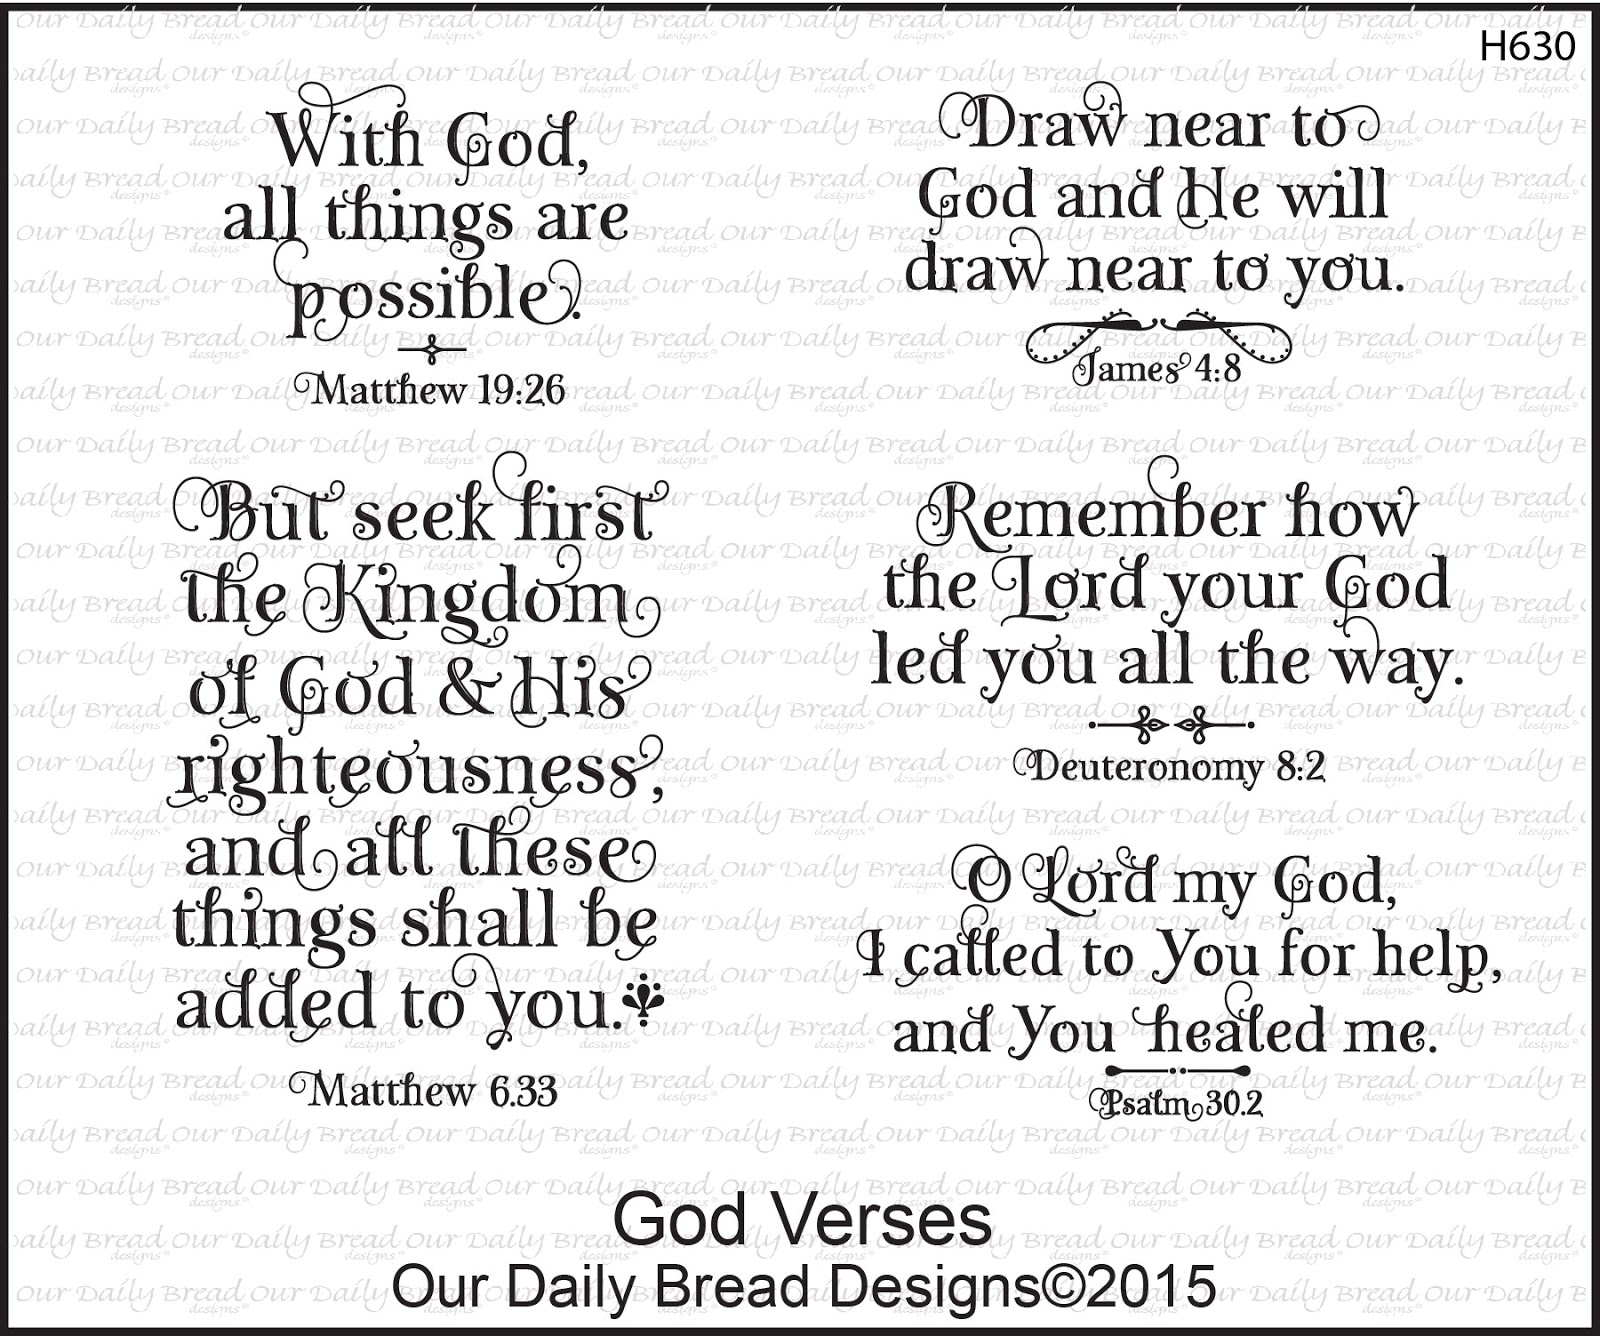 Stamps - Our Daily Bread Designs God Verses